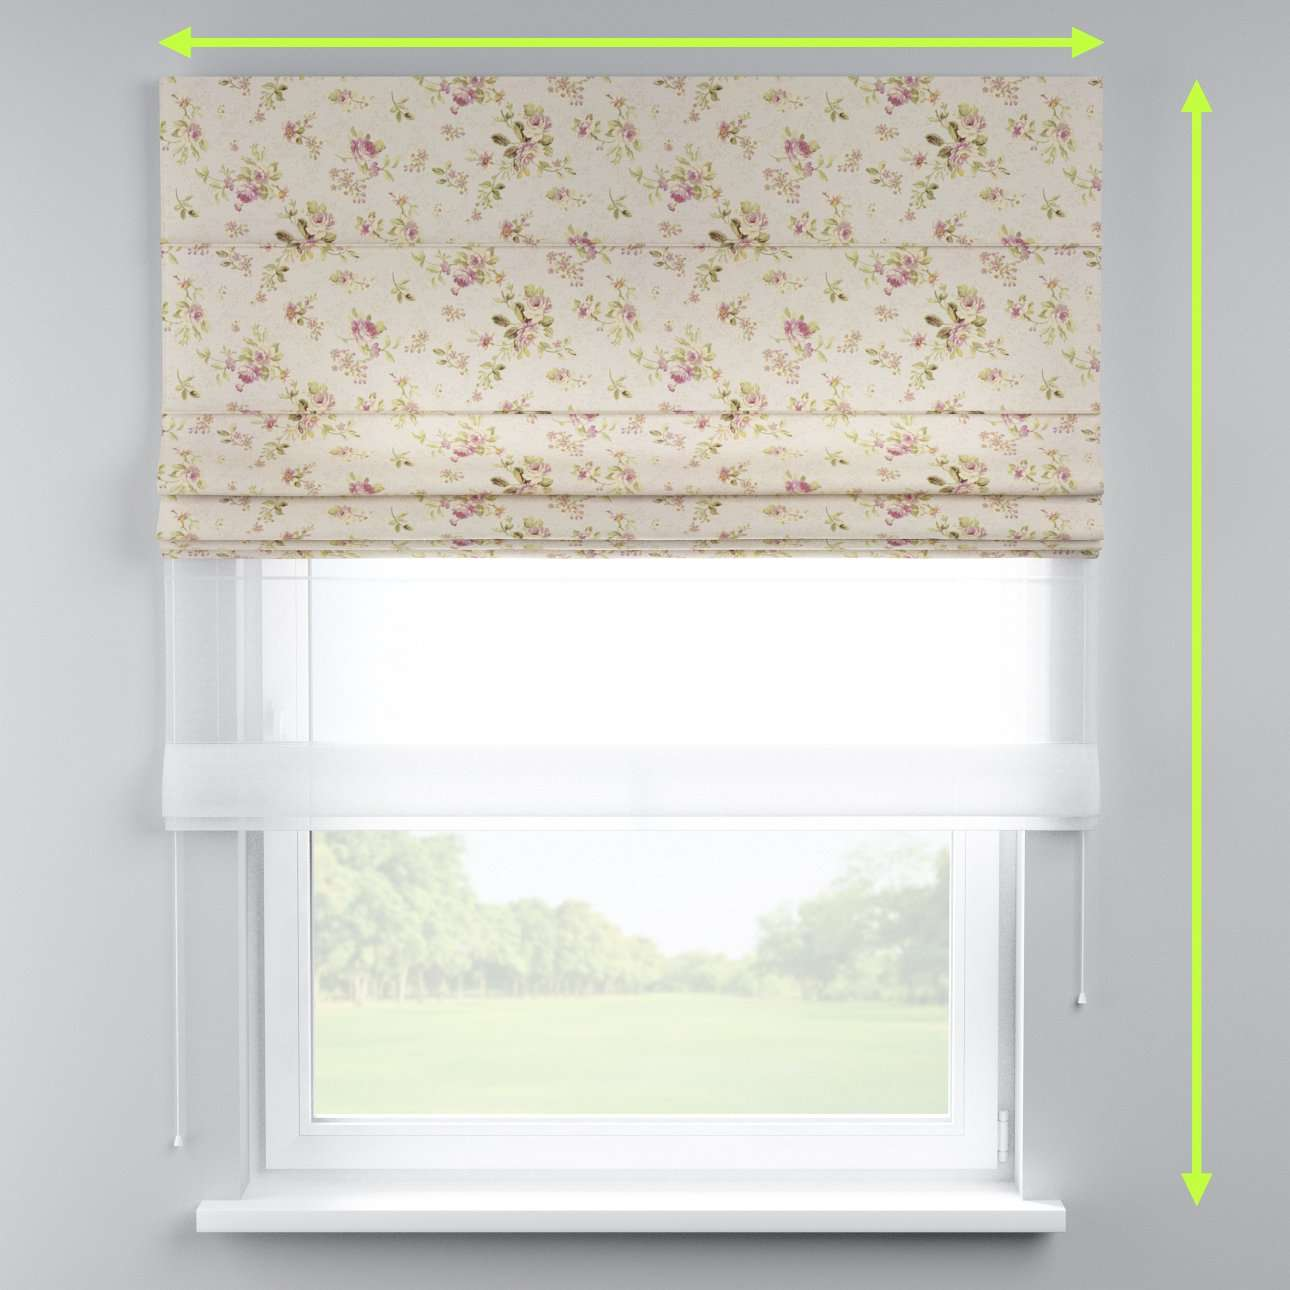 Voile and fabric roman blind (DUO II) in collection Londres, fabric: 122-07